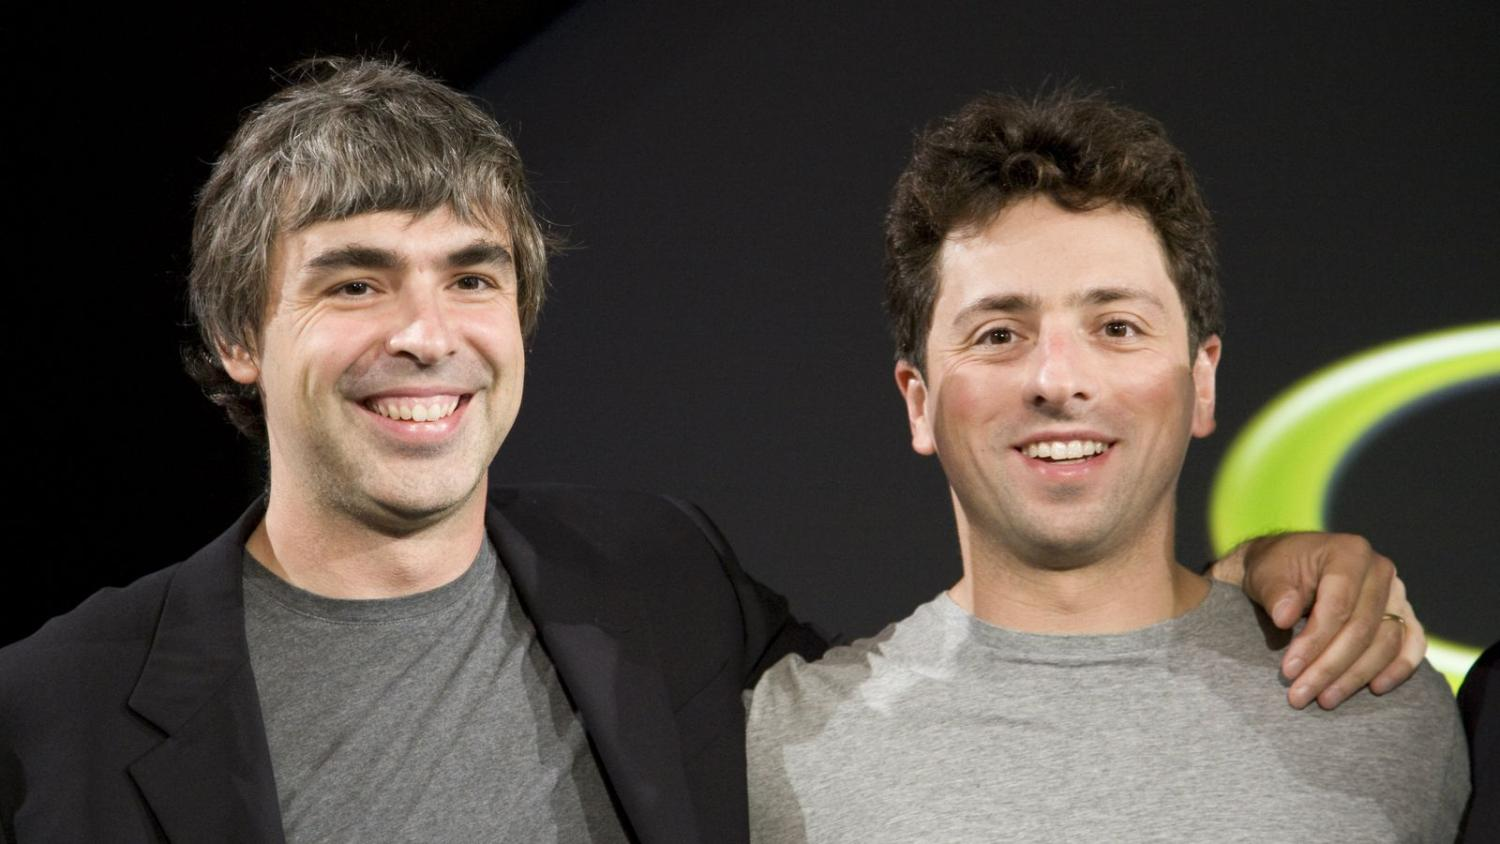 """larry page sergey strand """"width ="""" 1500 """"height ="""" 844 """"class ="""" alignnone size-full wp-image- 80003 """"srcset ="""" https://www.googlewatchblog.de/wp-content/uploads/ larry-page-sergey-brin.jpg 1500w, https://www.googlewatchblog.de/wp-content/uploads/larry- sergey-brin-page-300x169.jpg 300w, https://www.googlewatchblog.com/ wp-content / uploads / larry-page-sergey-brin-768x432.jpg 768w, https://www.googlewatchblog.de/wp-content/uploads/ larry-page-sergey-brin-1024x576.jpg 1024w, https: //www.googlewatchblog.com/wp-content/uploads/larry-page-sergey-brin-640x360.jpg 640w, https://www.googlewatchblog.com/wp-content/uploads/larry-page-sergey-brin -800x450.jpg 800w """"values ="""" (maximum width: 1500px) 100vw, 1500px"""